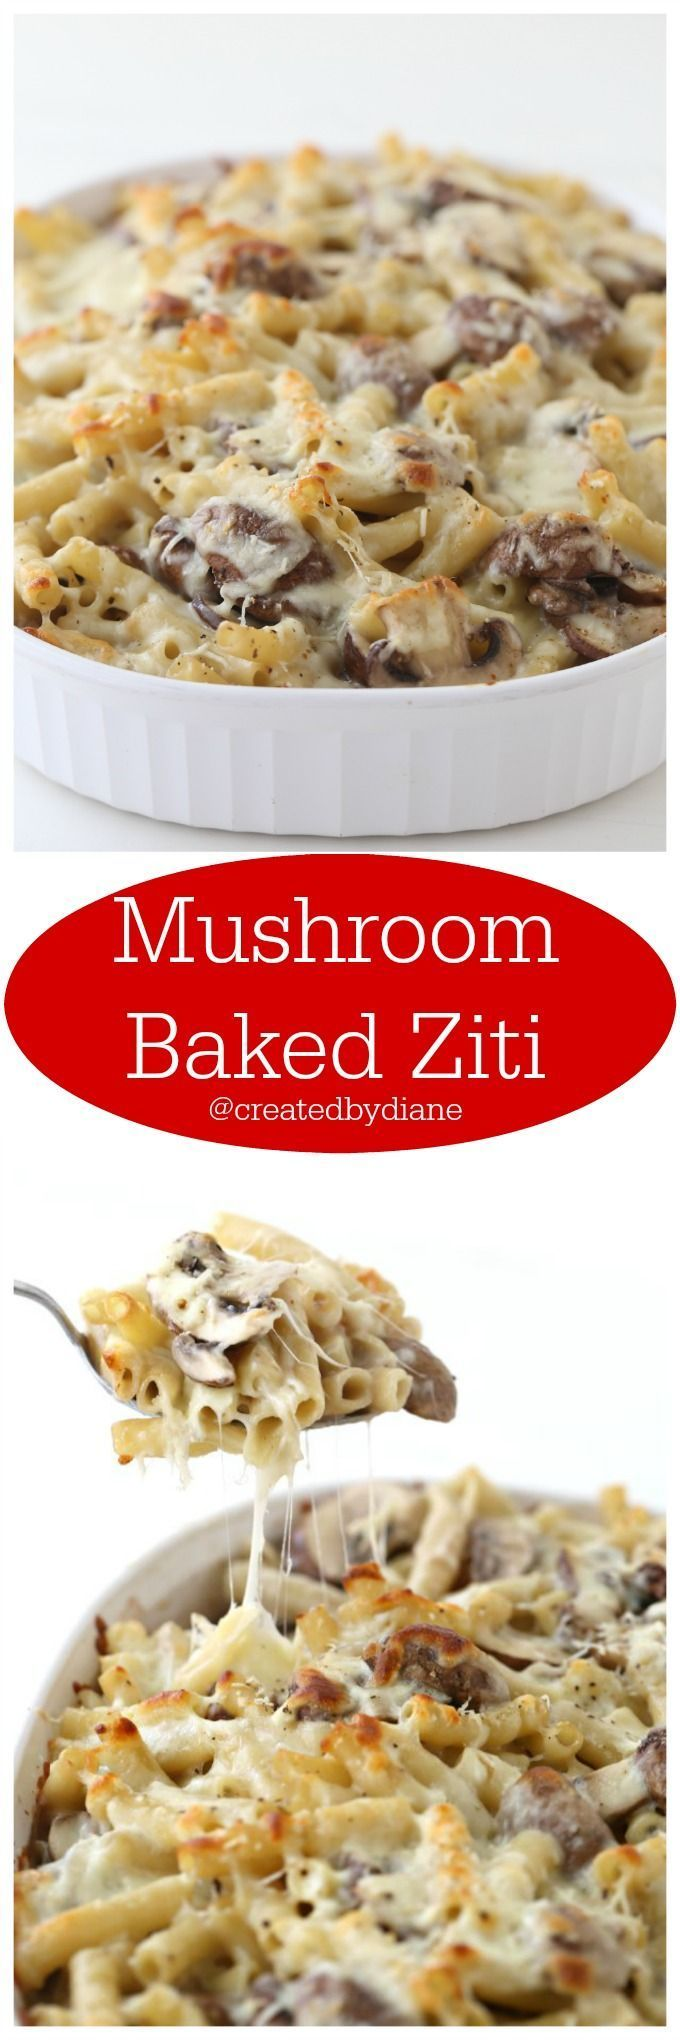 Mushroom Baked Ziti Recipe from /createdbydiane/ Delicious baked pasta casserole with mushrooms in a red wine sauce